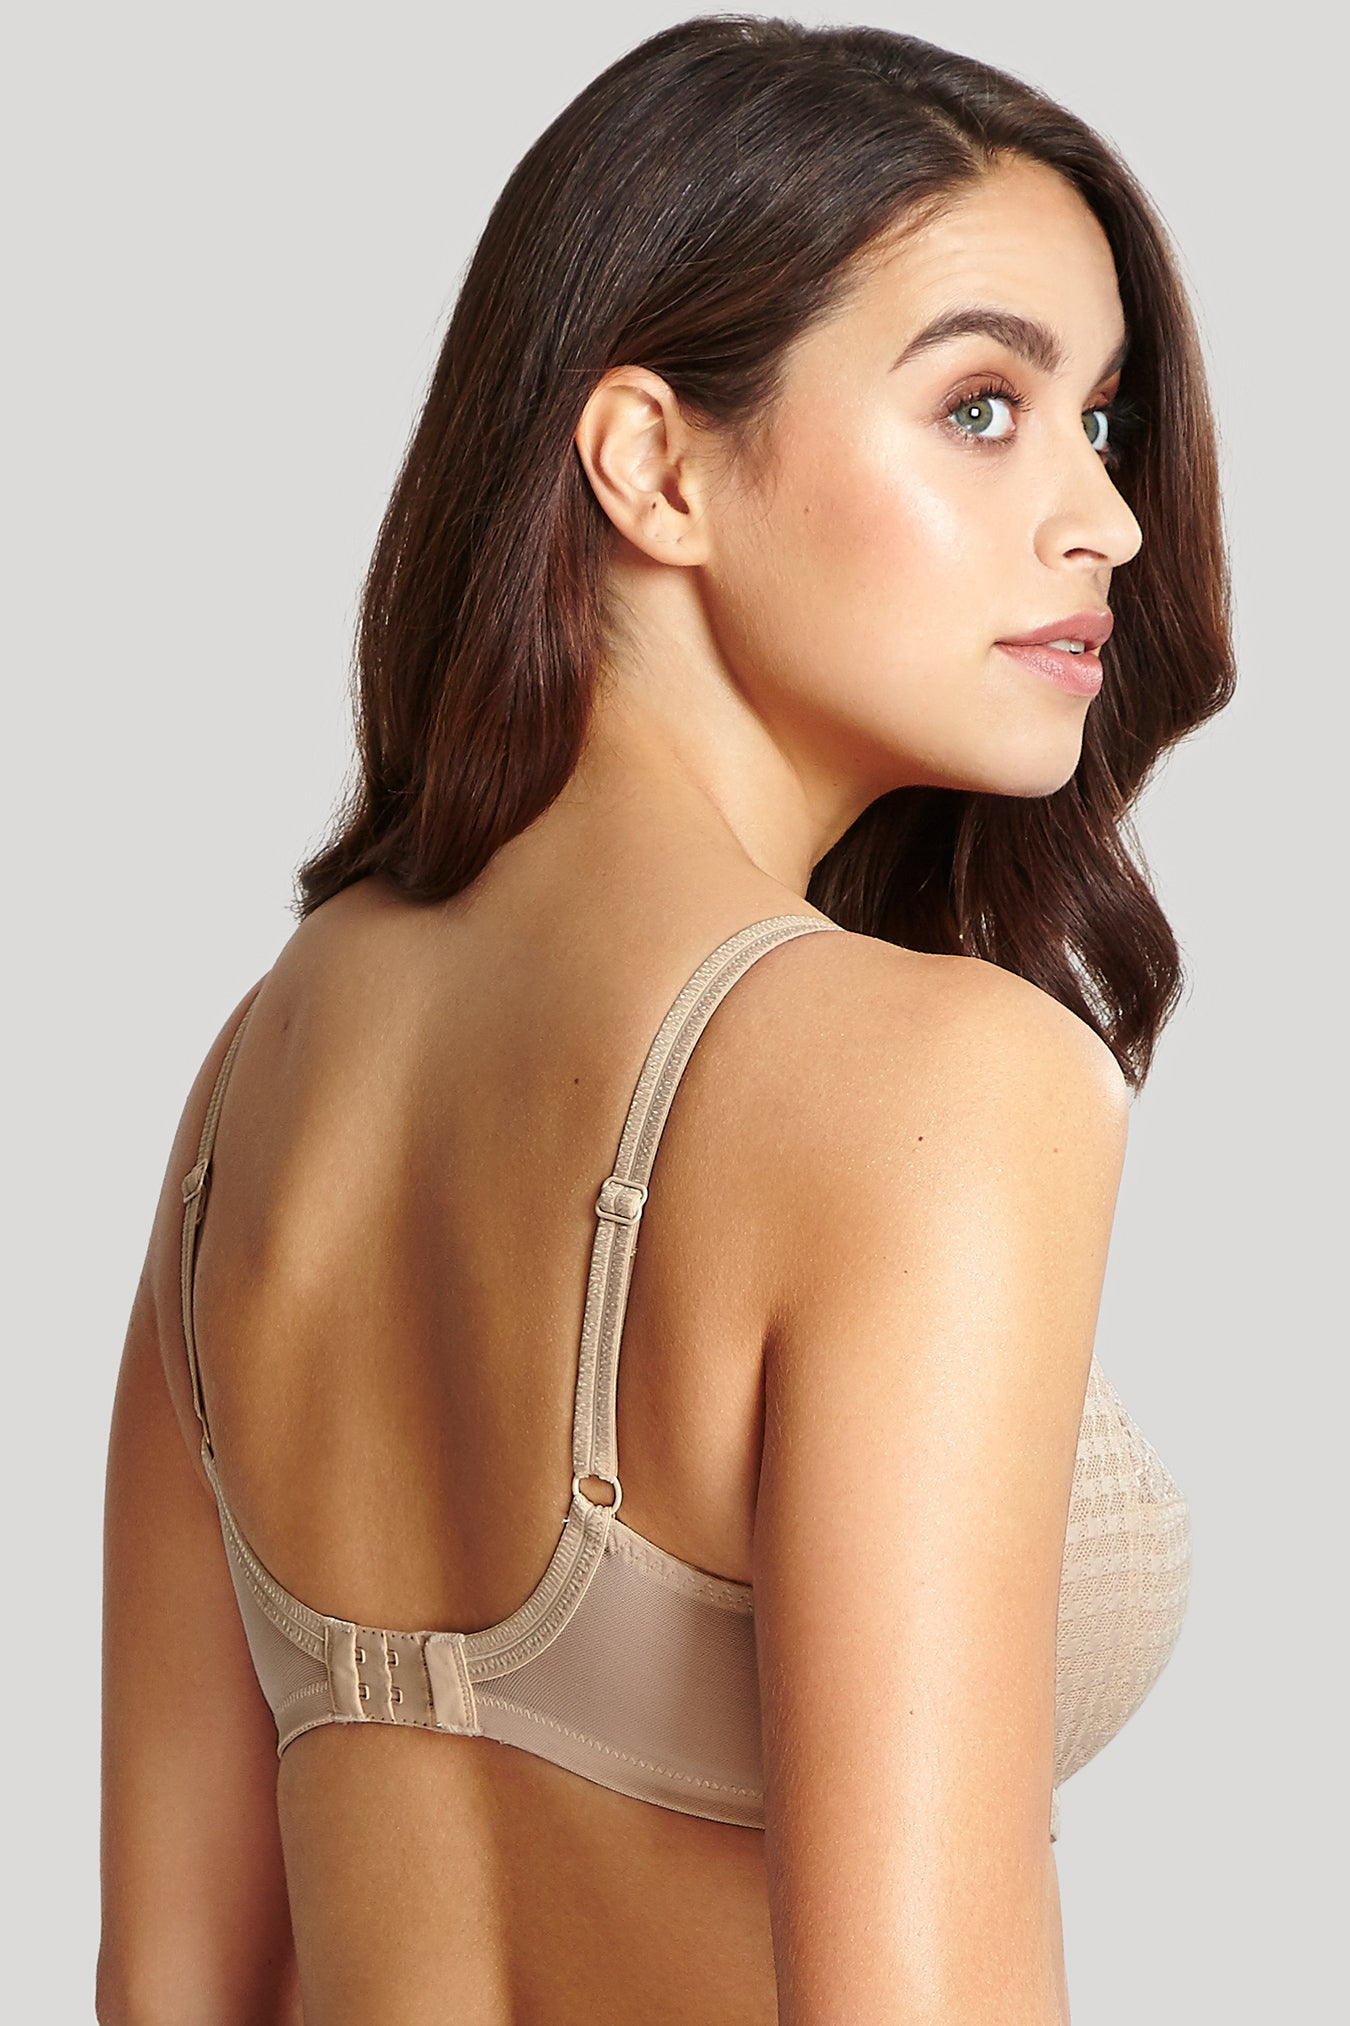 Montelle The Essentials Pure Racer Underwire Racerback Bra 36B Nude